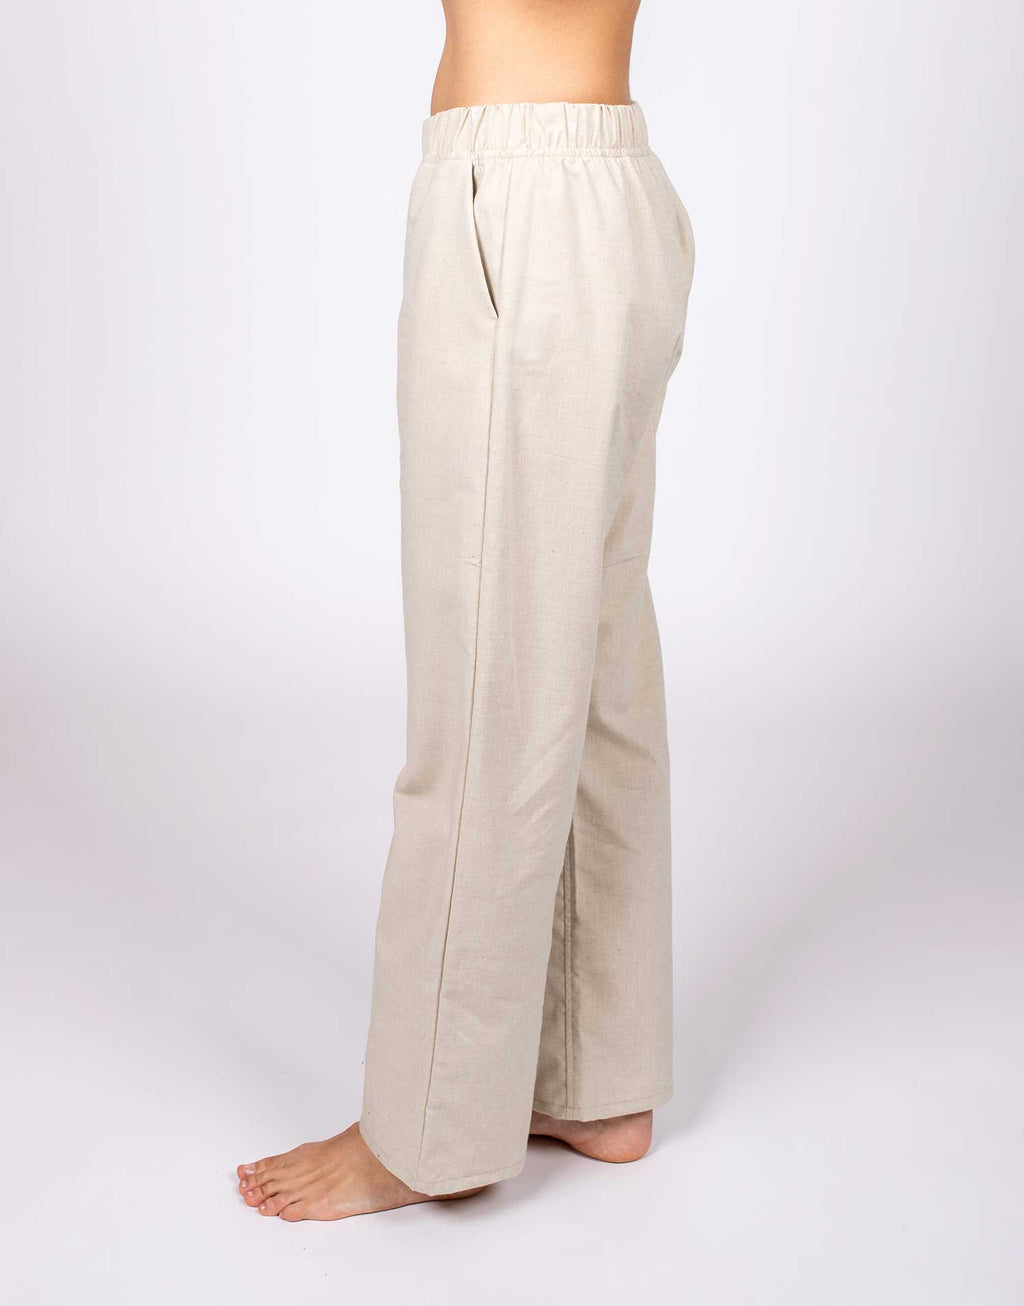 Organic Cotton Woven Pajama Pants